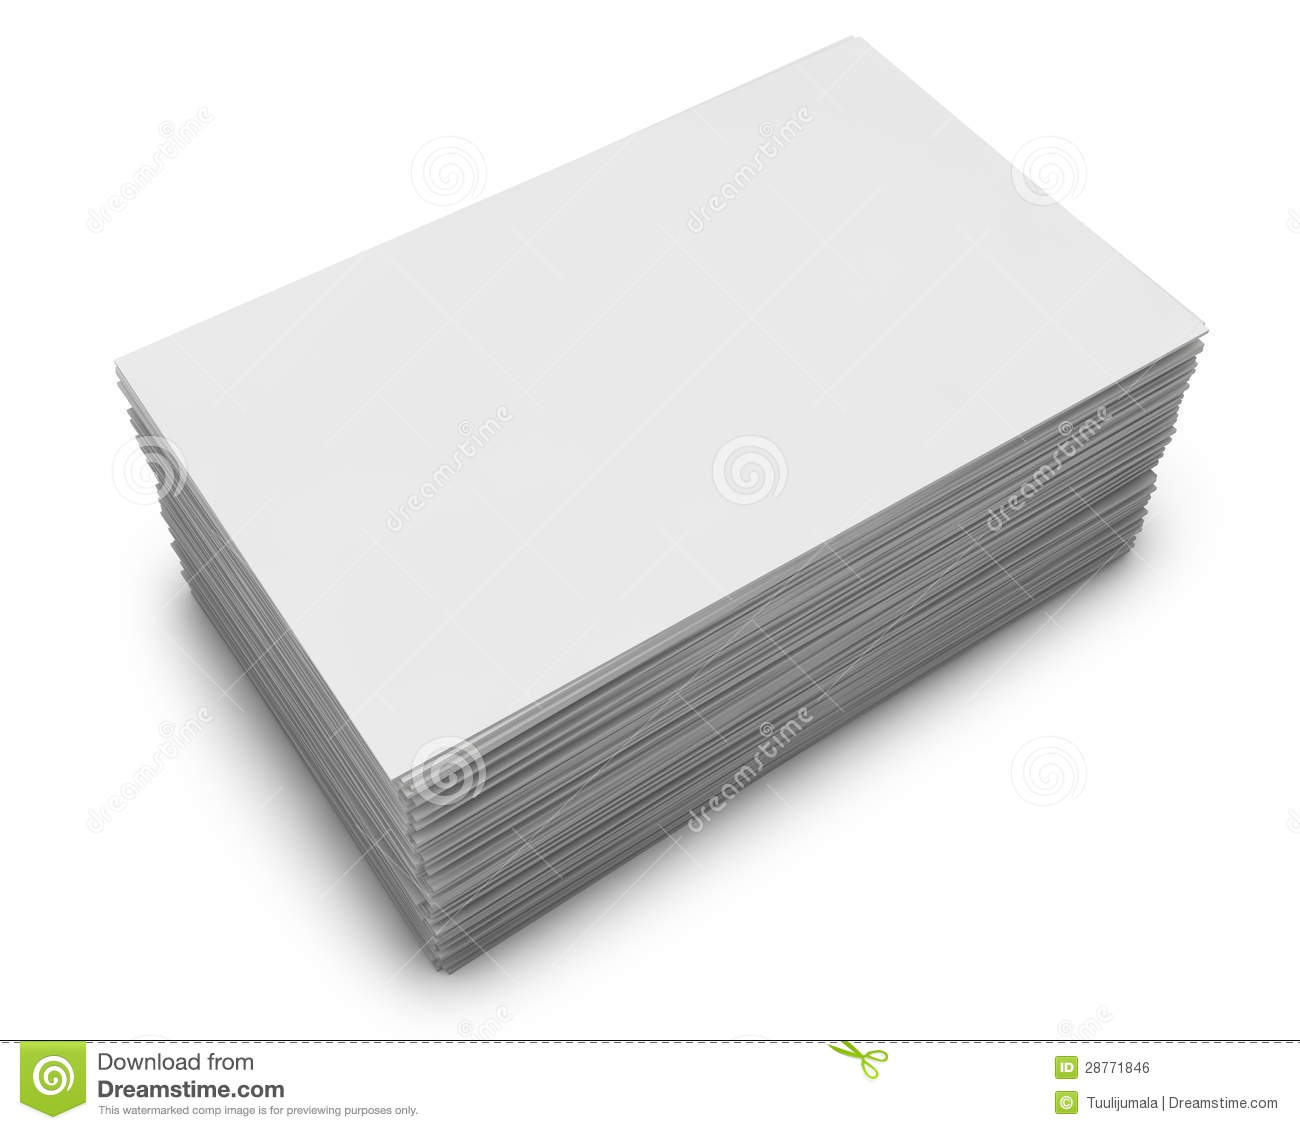 Blank Business Cards Stack Royalty Free Stock Image - Image: 28771846